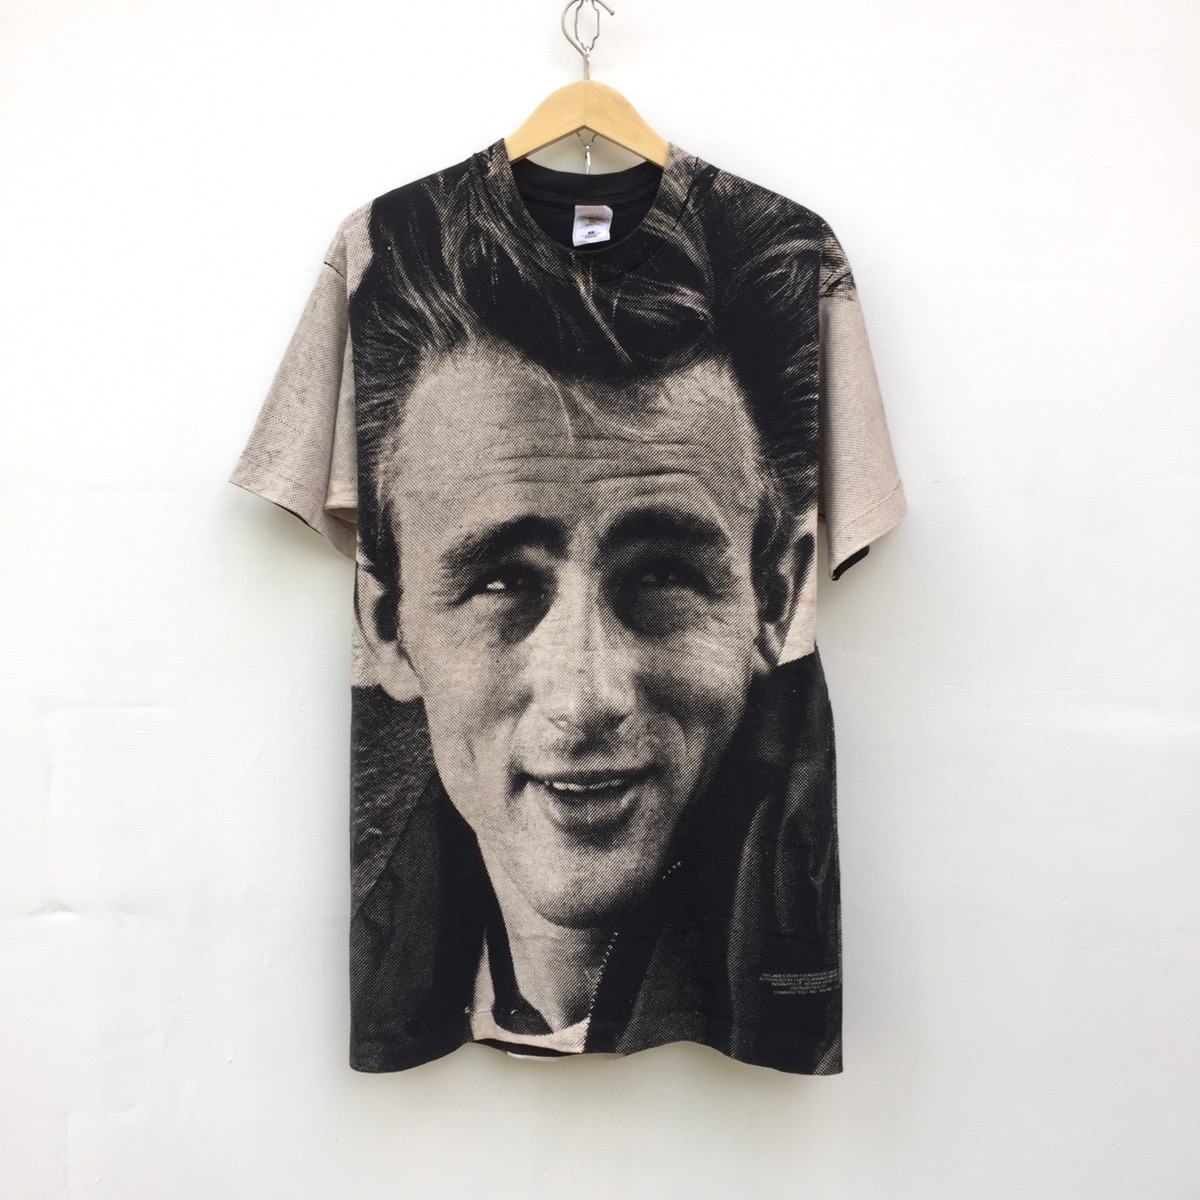 Rare! James dean rebel without a cause 1993  authorised by curtis management group indianapolis ALl OVer PRint MOSquito HEad T-SHirt X L